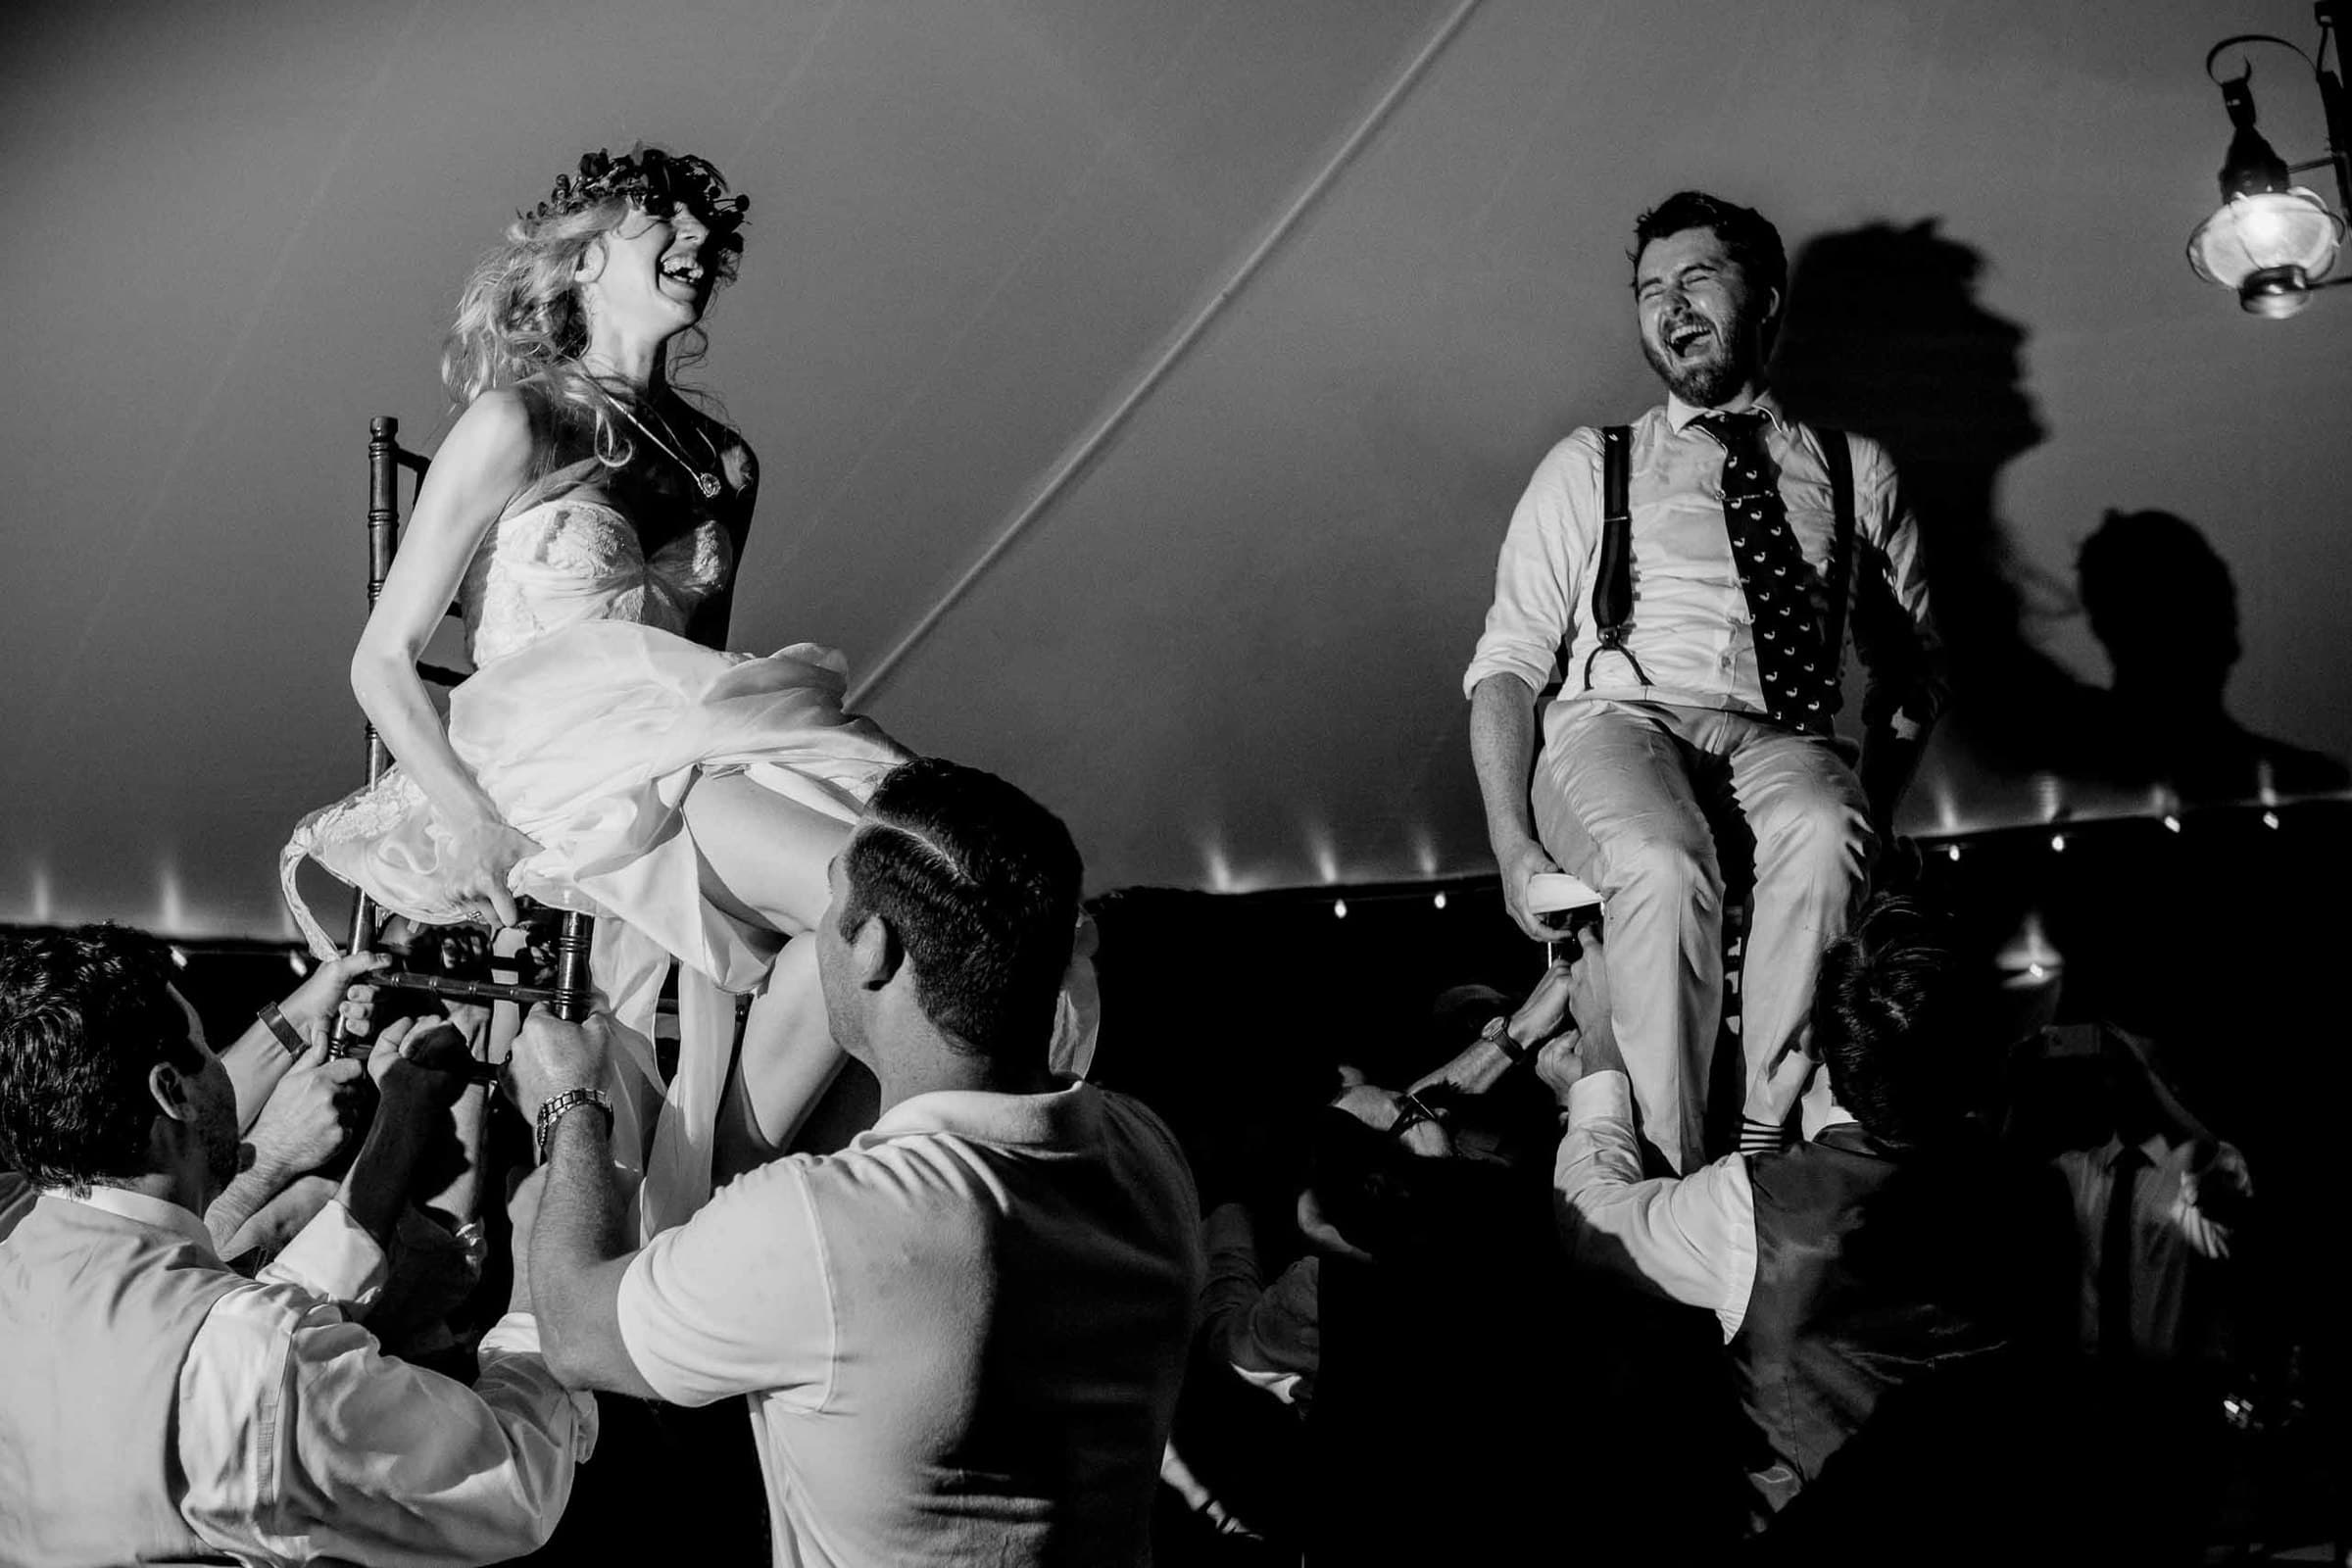 Bride and groom in a wild hora dance on chairs during their Chesapeake Bay wedding ceremony in Maryland at Wades Point Inn.